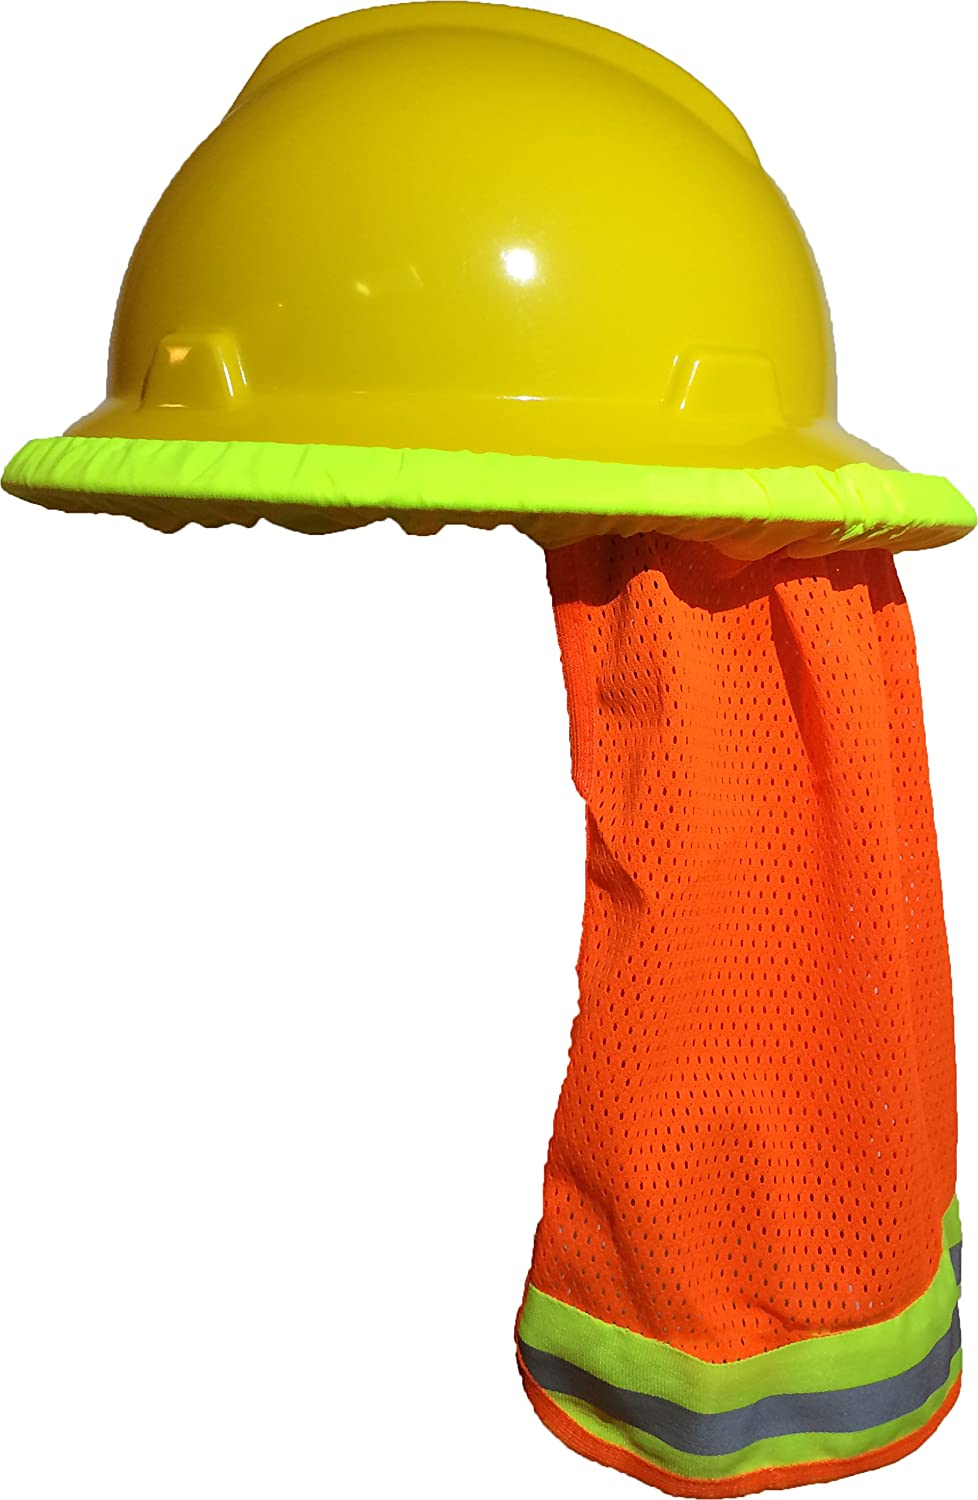 US Safety Hard Hat Neck Shield Cover Helmet Sun Shade Reflective Stripe 2 Colors